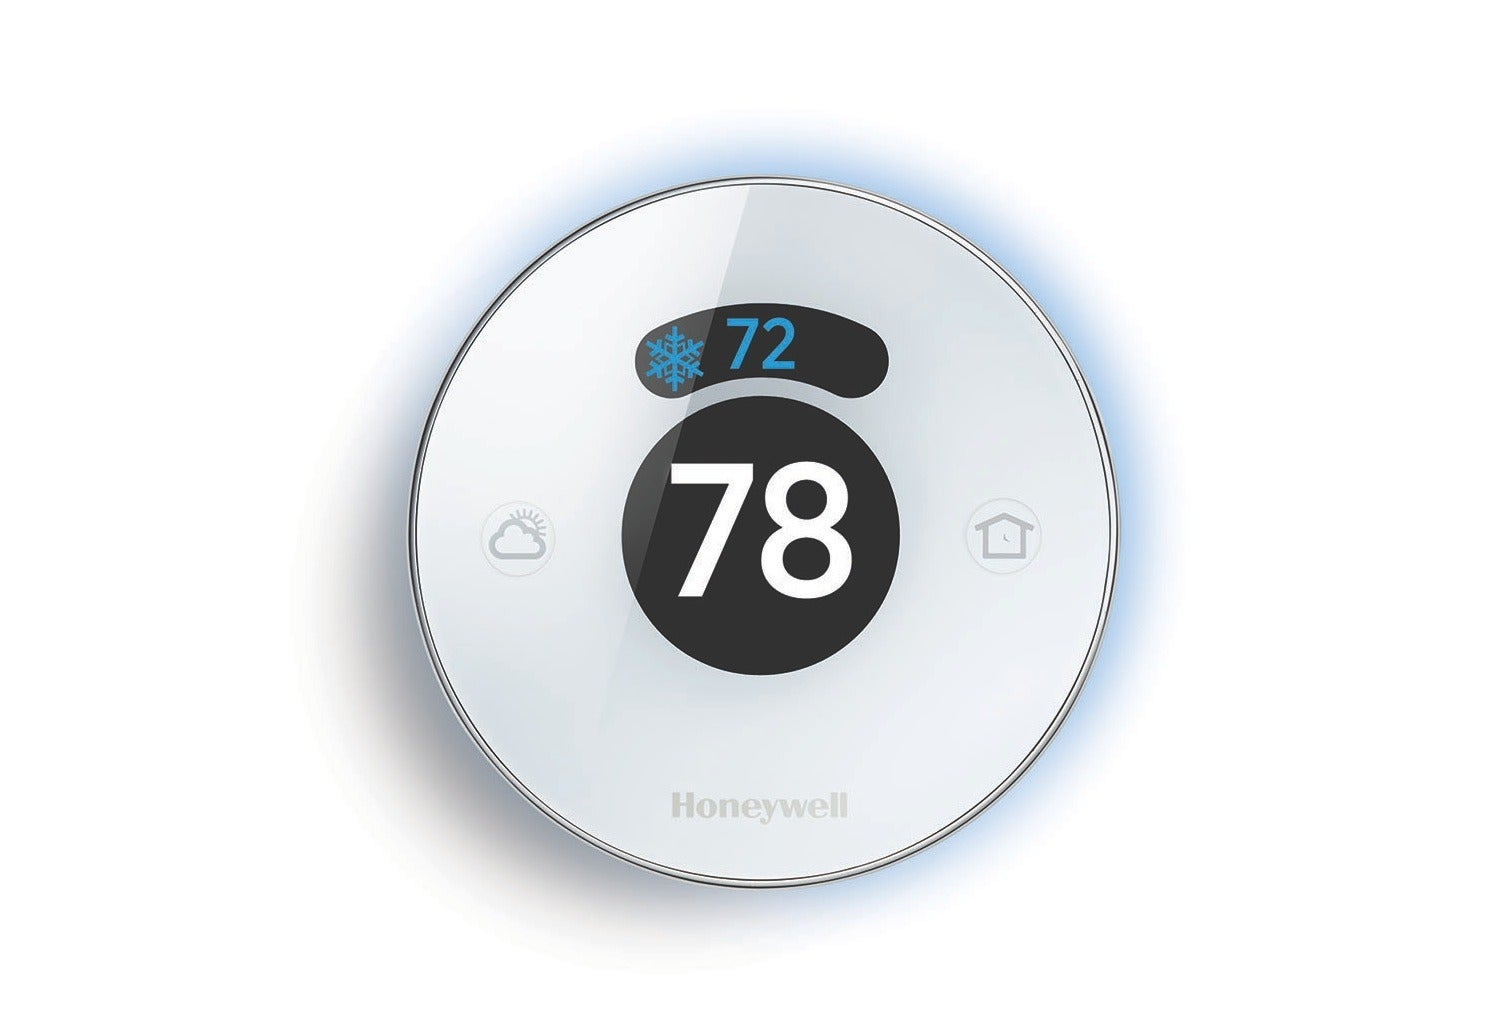 hight resolution of honeywell thermostat symbols meaning